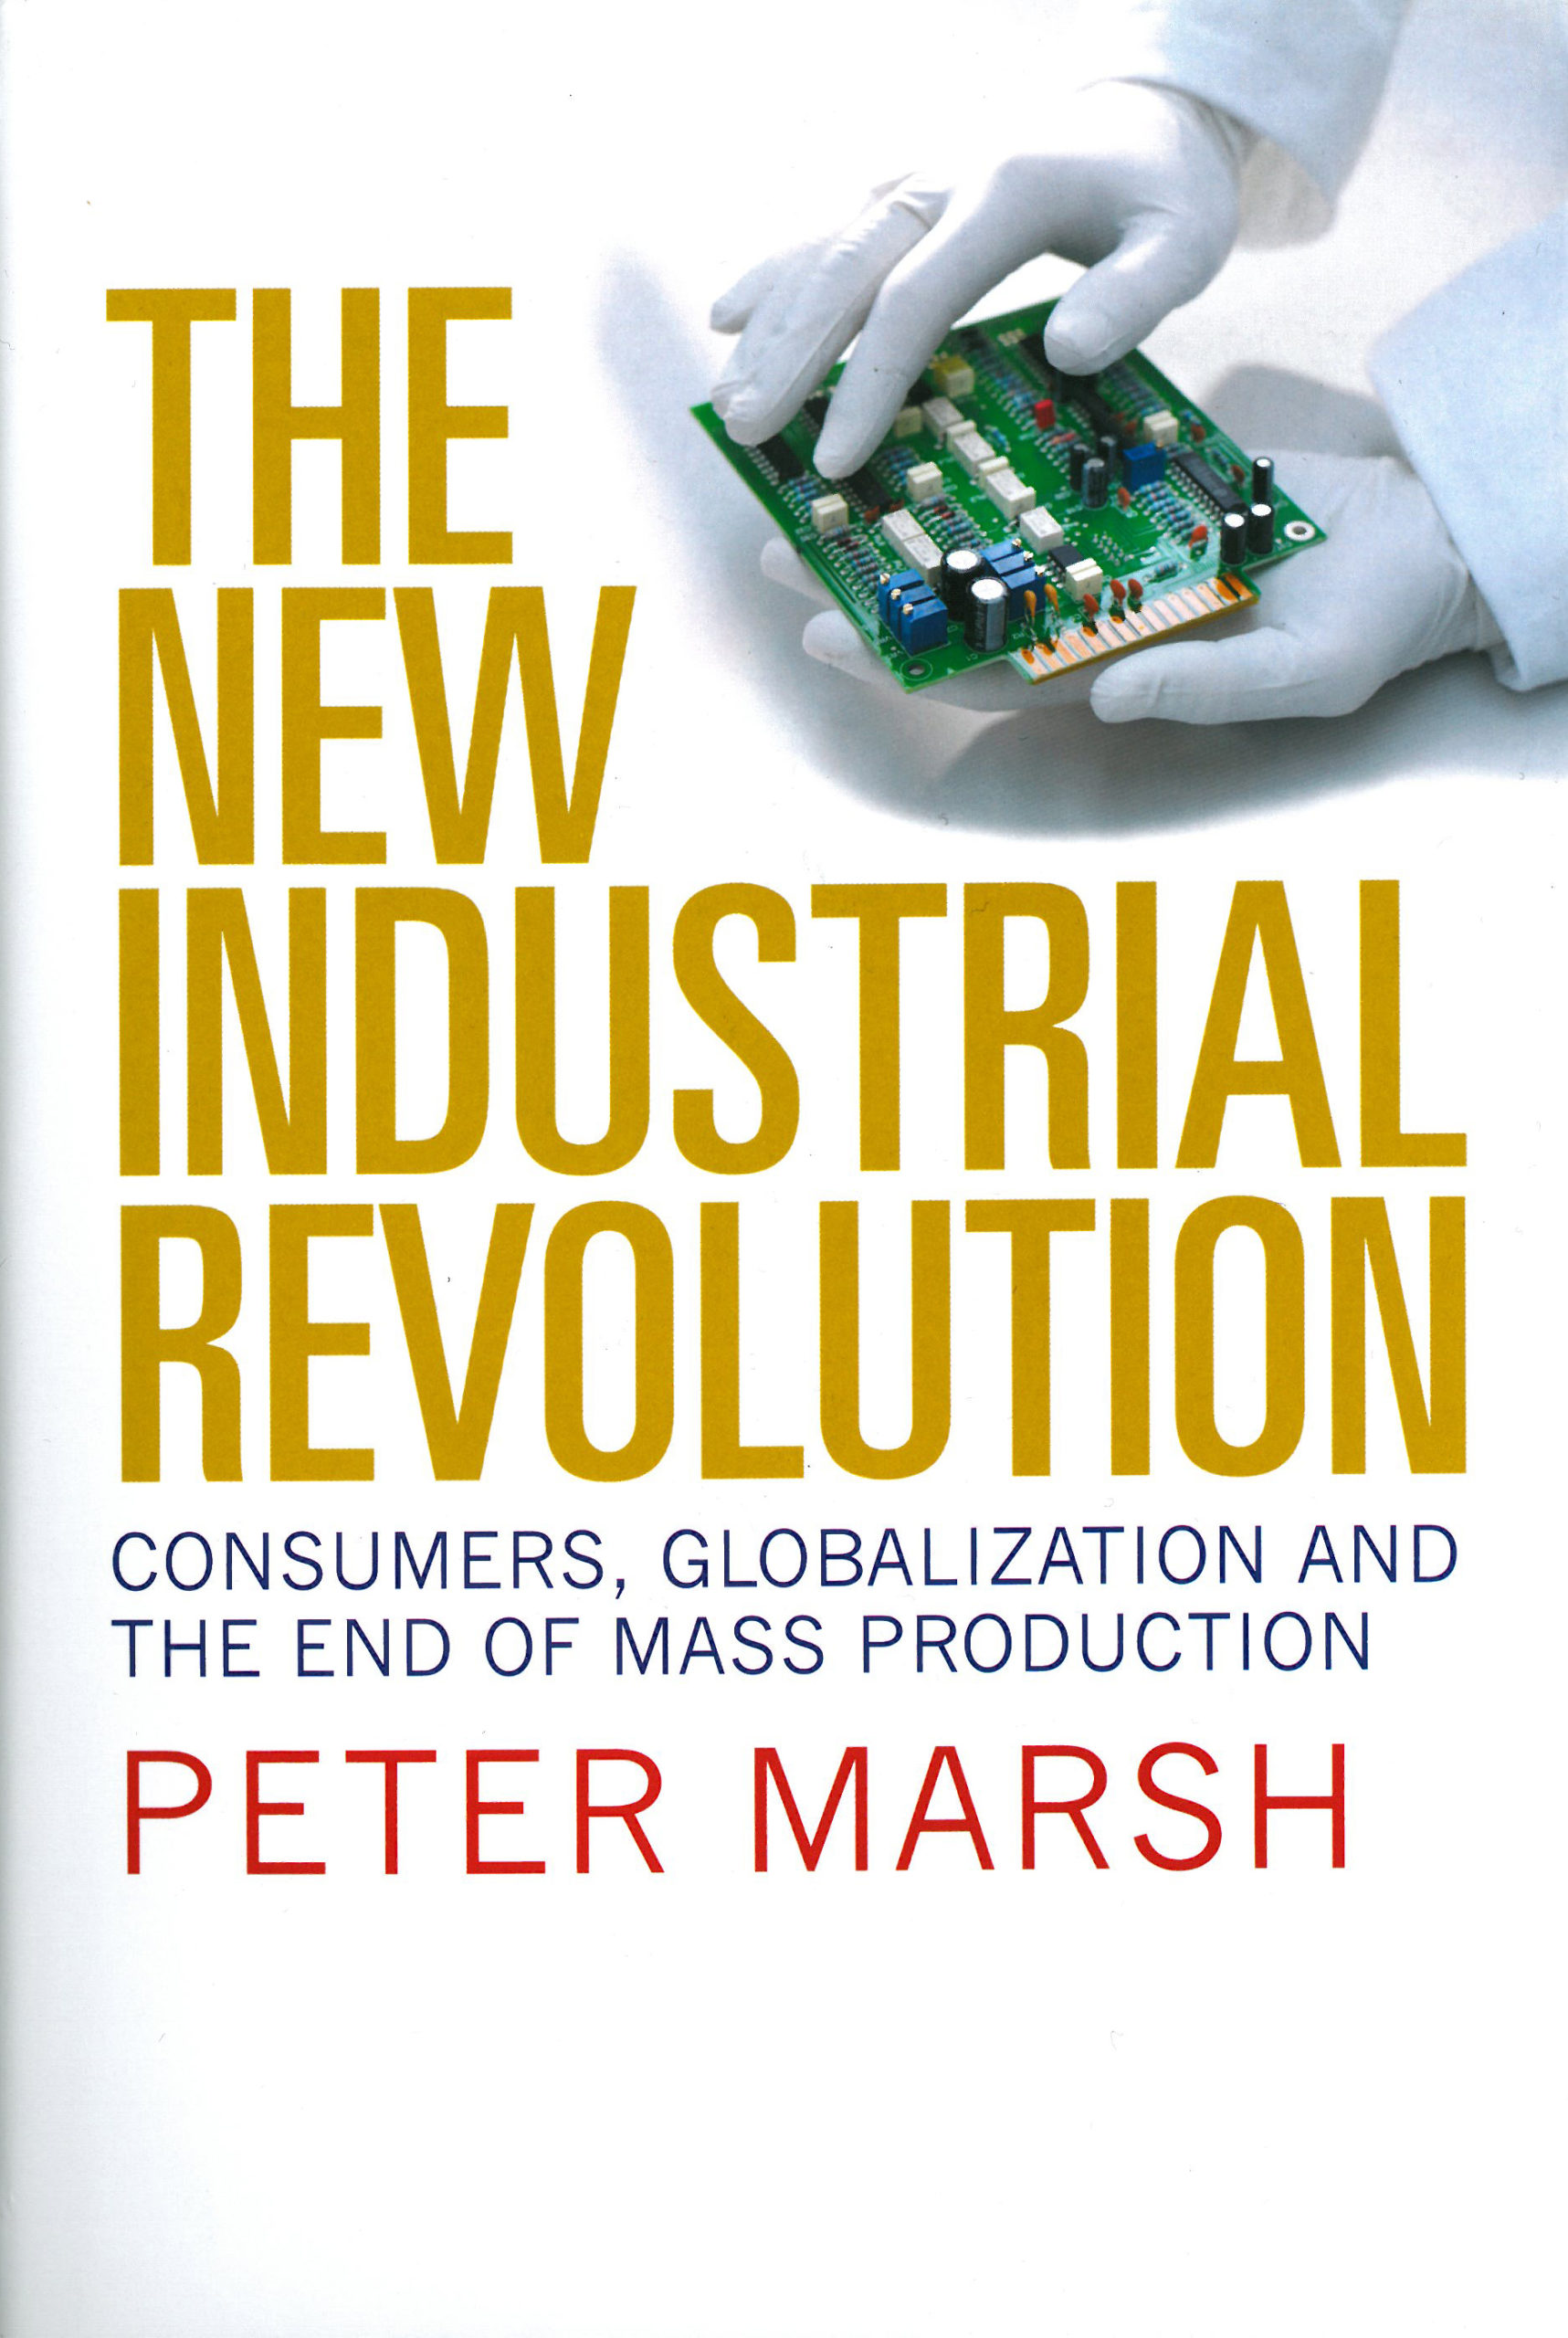 Peter Marsh: The New Industrial Revolution. Consumers, Globalization and the End of Mass Production. Yale University Press 2012, 311 s.